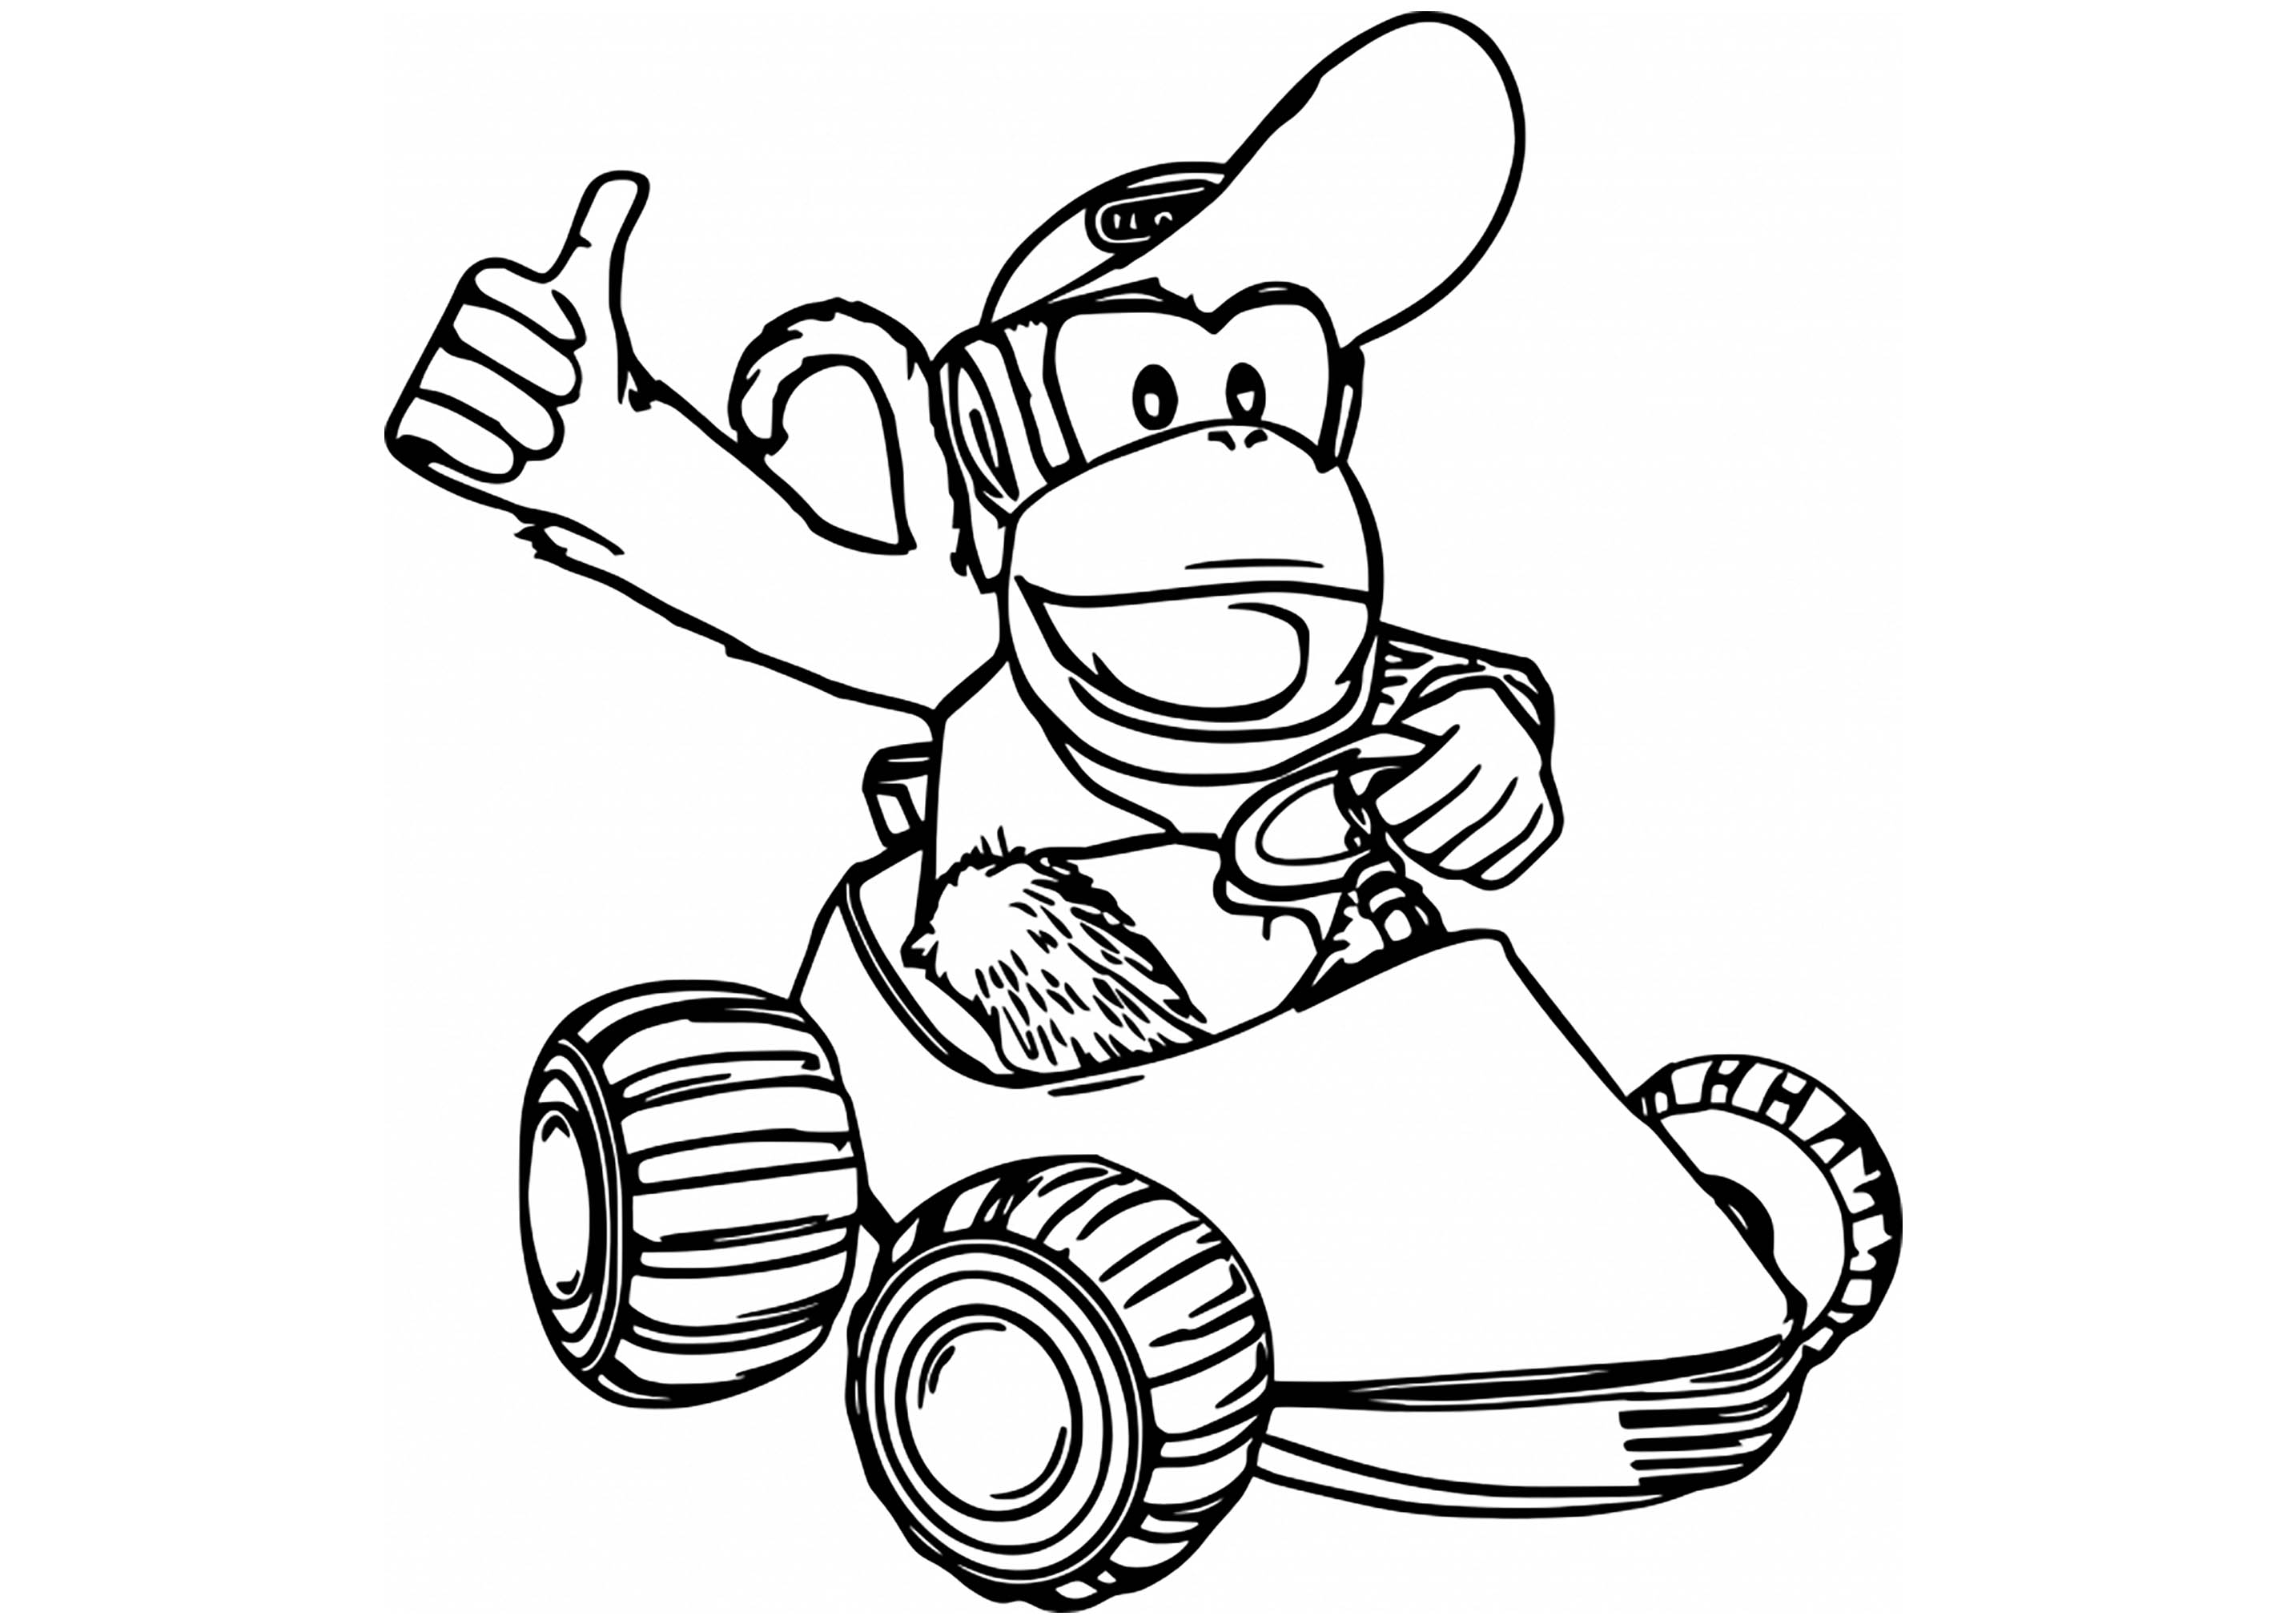 Mario Kart Drawing Free Download On Clipartmag